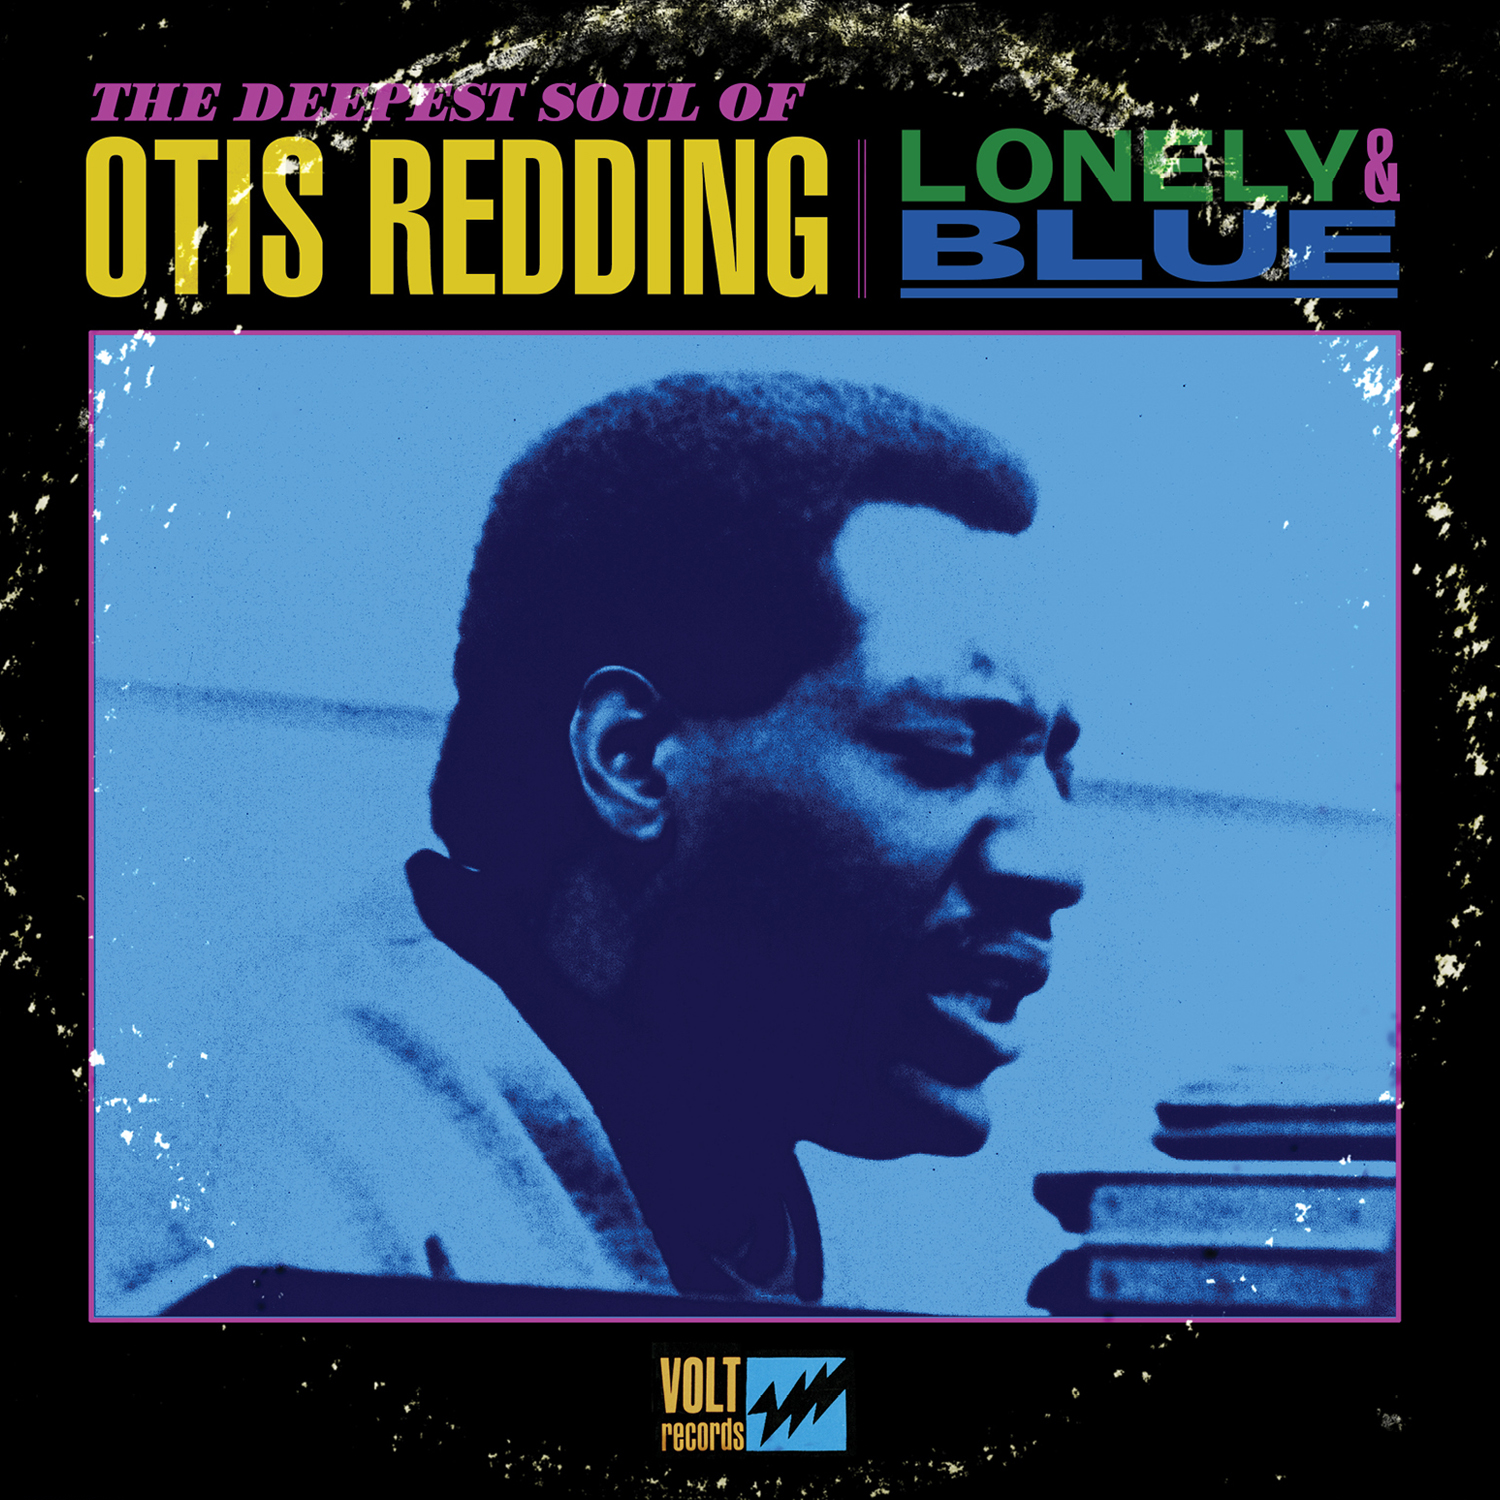 Otis Redding - Lonely and Blue